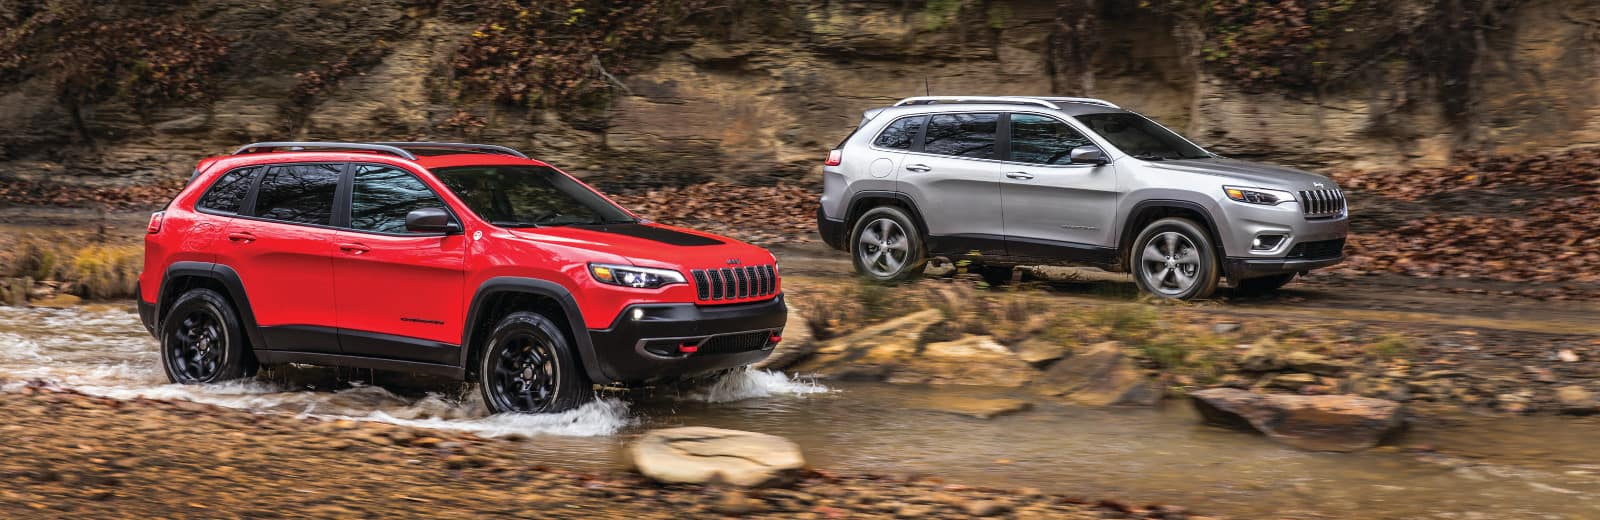 Two 2019 Jeep Cherokees going offroading